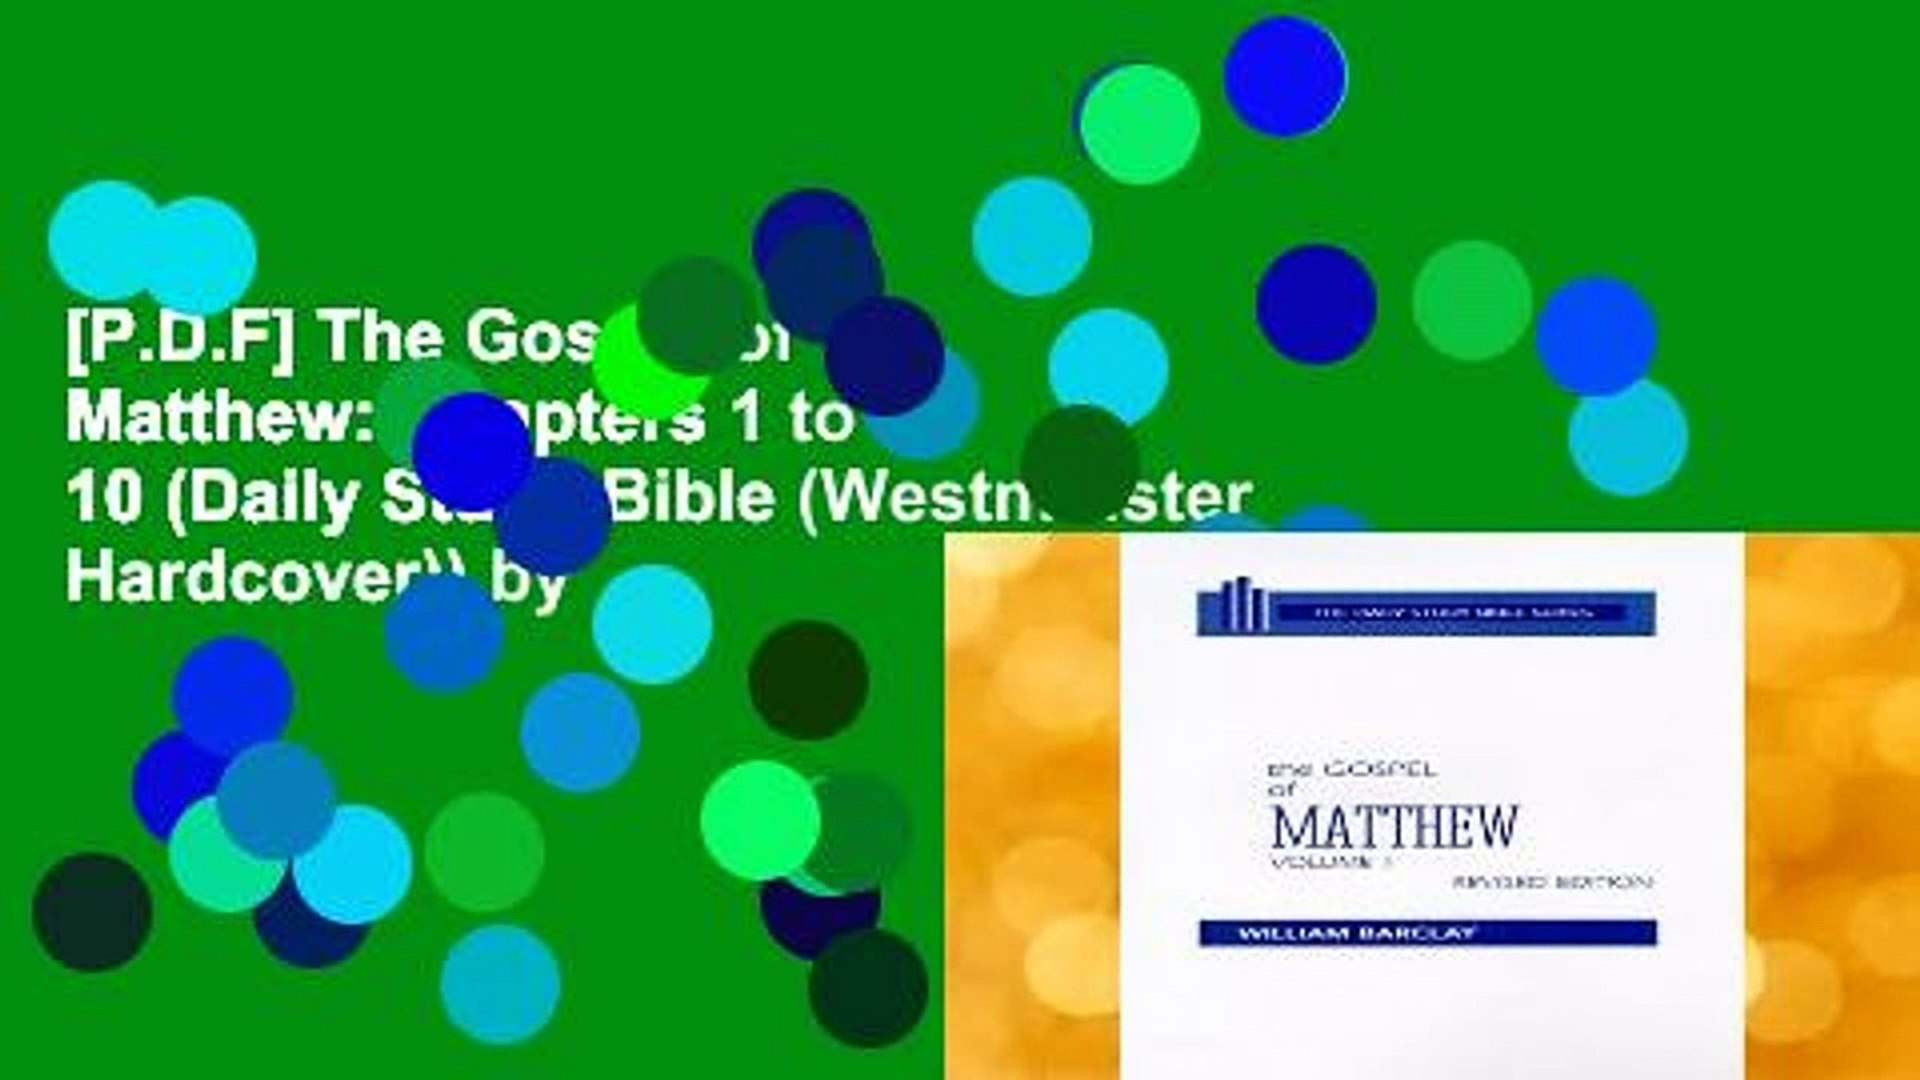 [P D F] The Gospel of Matthew: Chapters 1 to 10 (Daily Study Bible  (Westminster Hardcover)) by